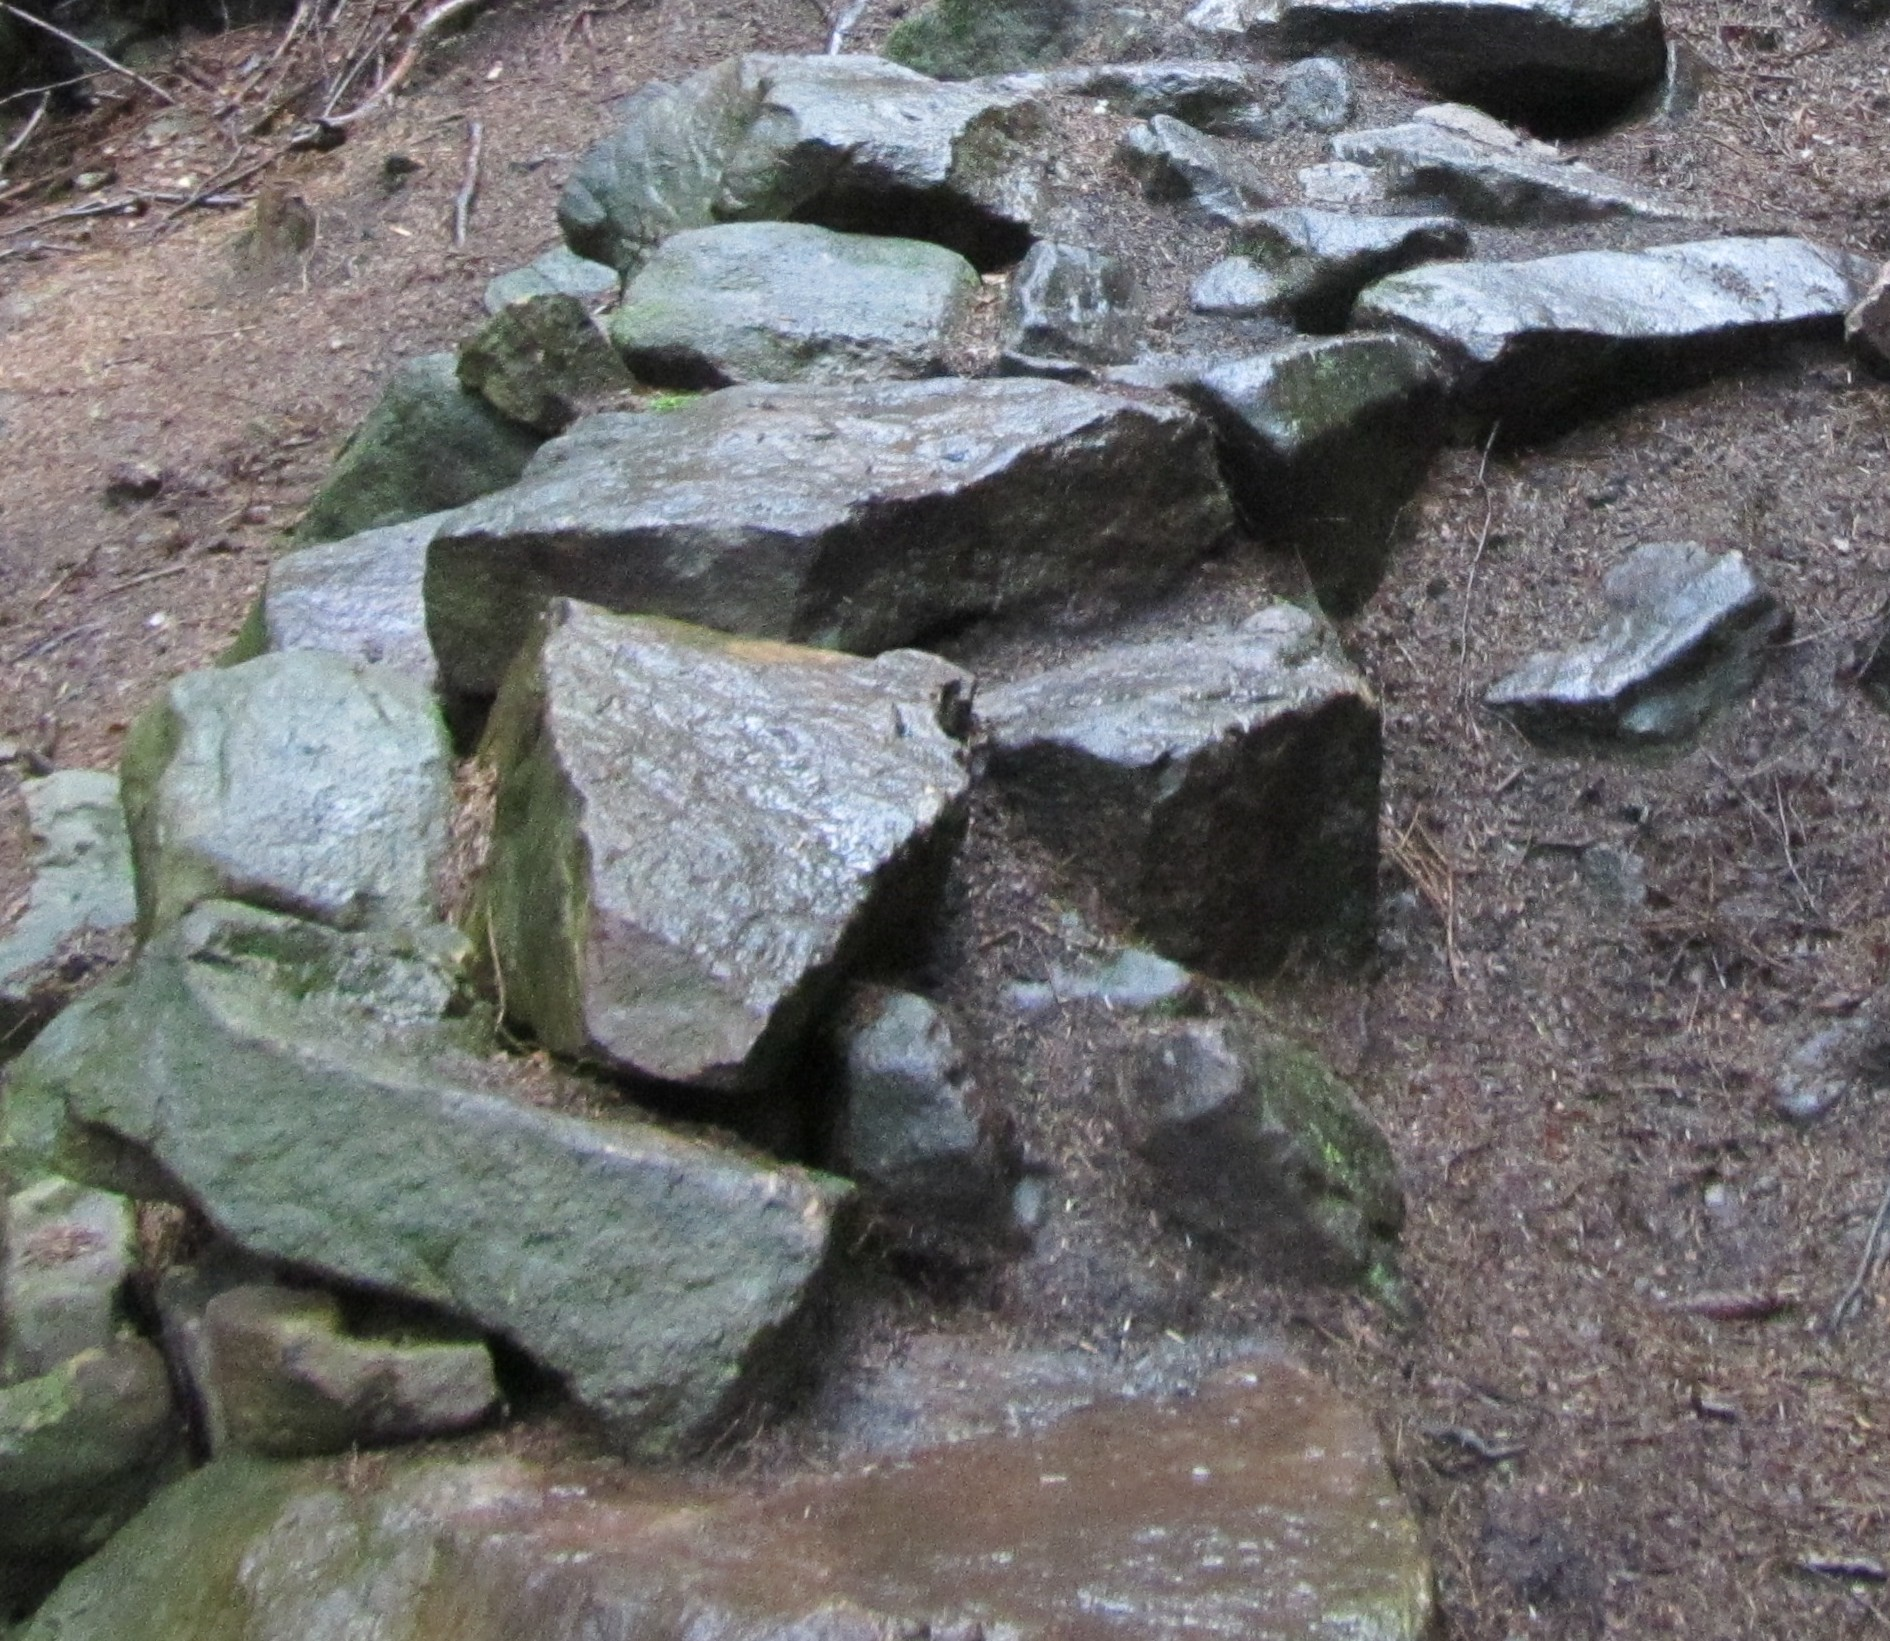 The Rocks of Stainburn